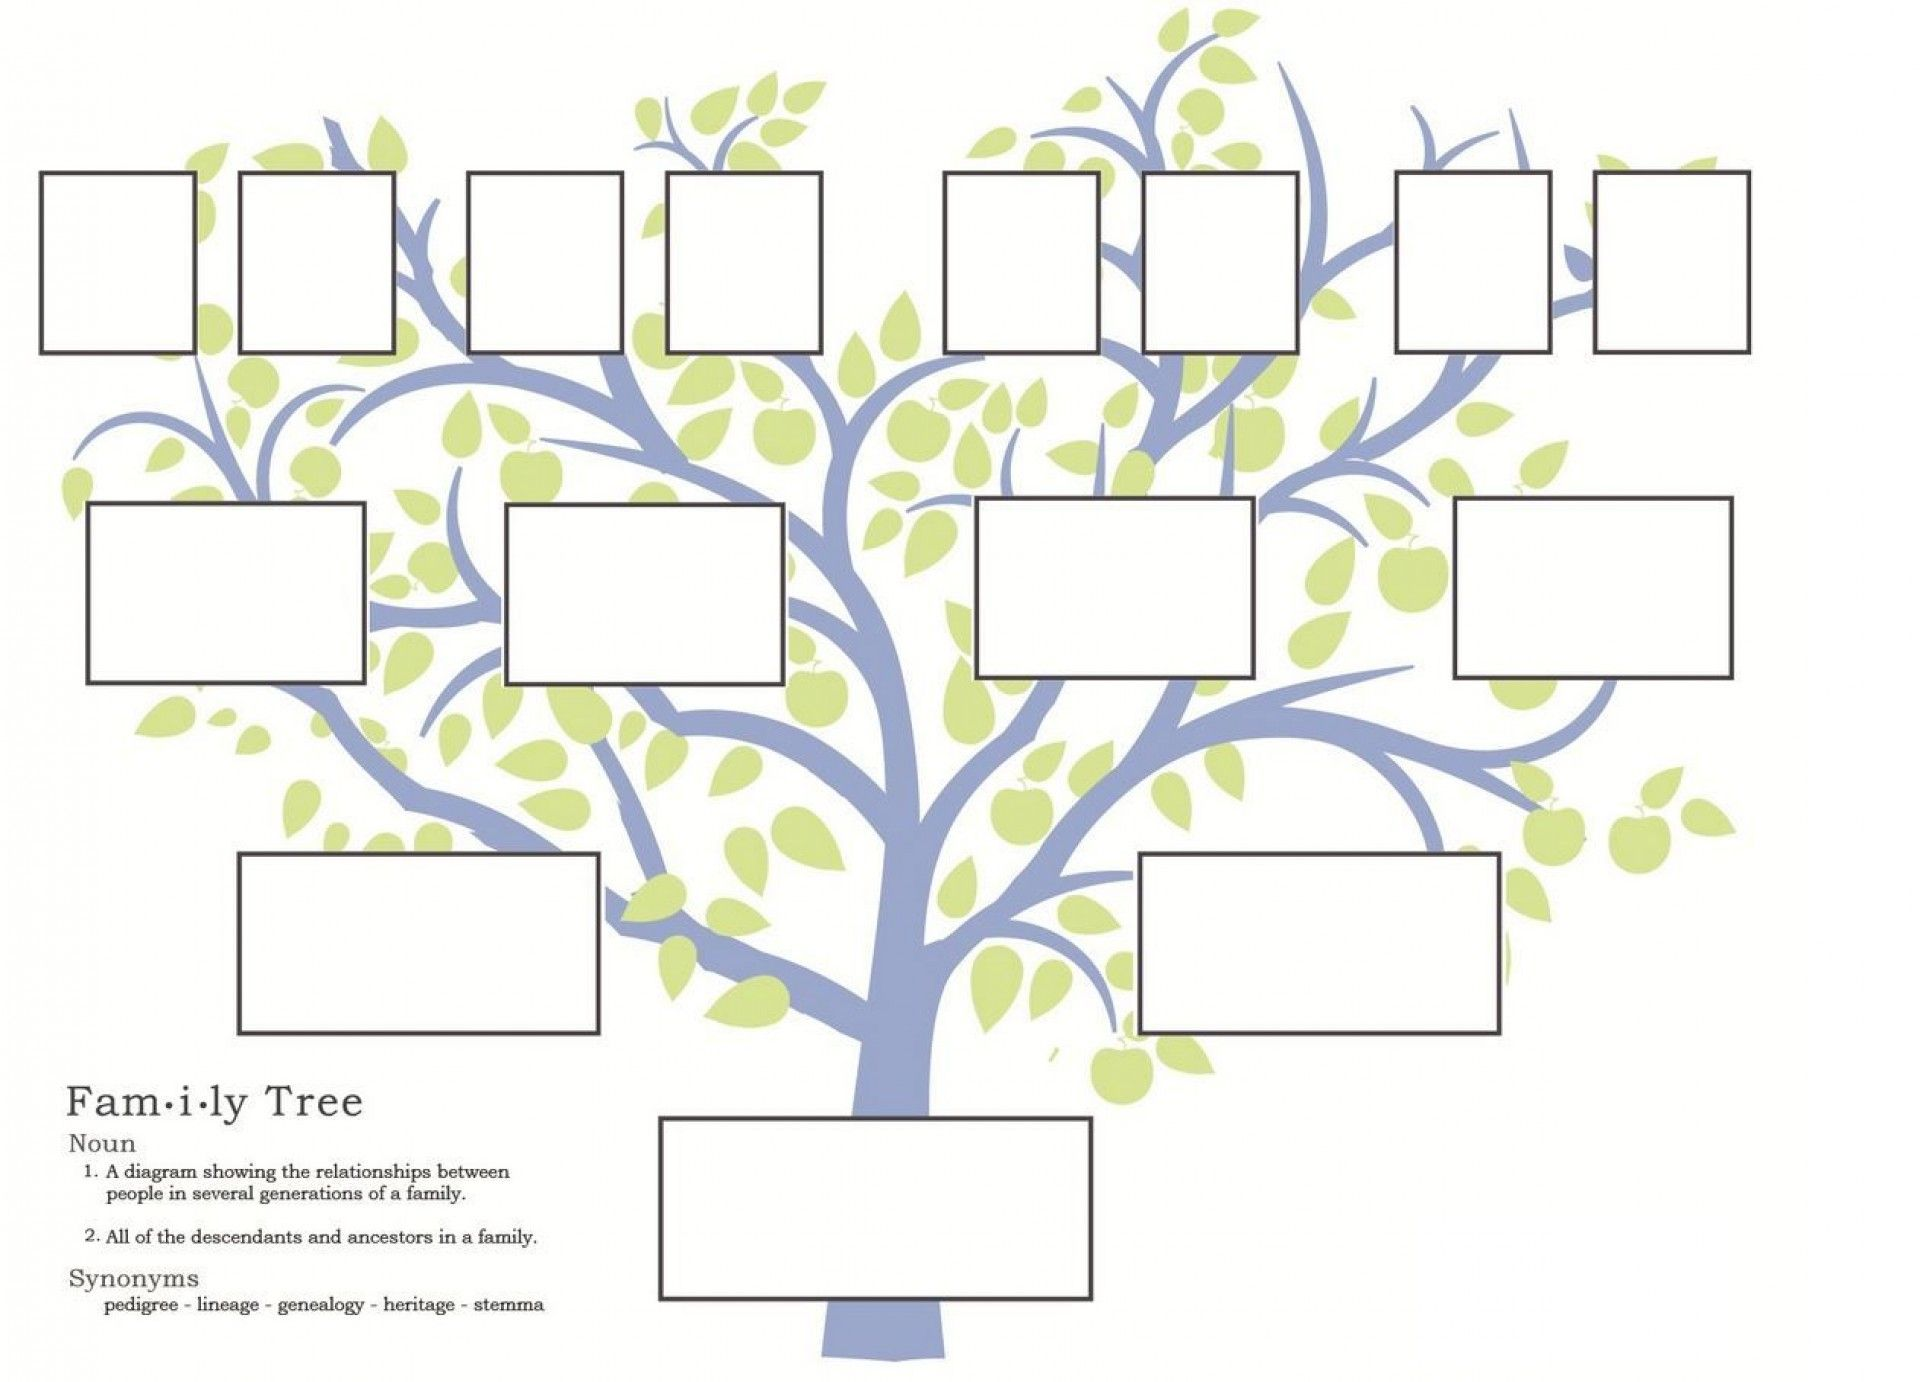 Family Tree Template Word 2007 With 3 Generation Family Tree